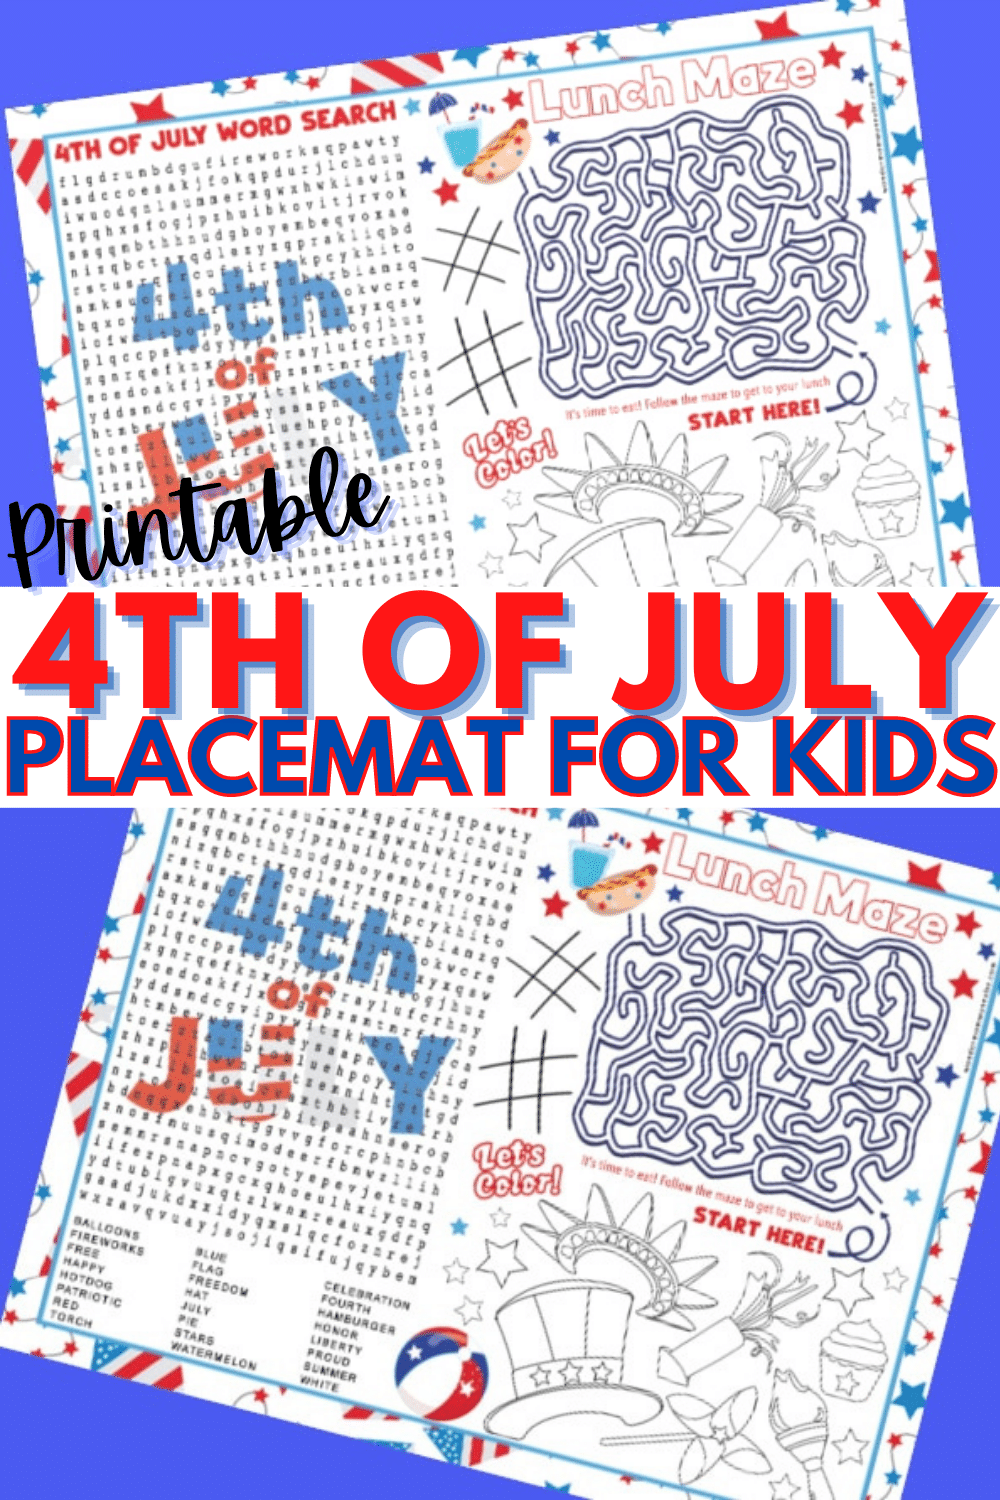 This printable 4th of July placemat for kids is patriotic and fun. A placemat with a word search, maze and coloring area, this will keep kids busy at meals. #printables #4thofJuly #placemats via @wondermomwannab